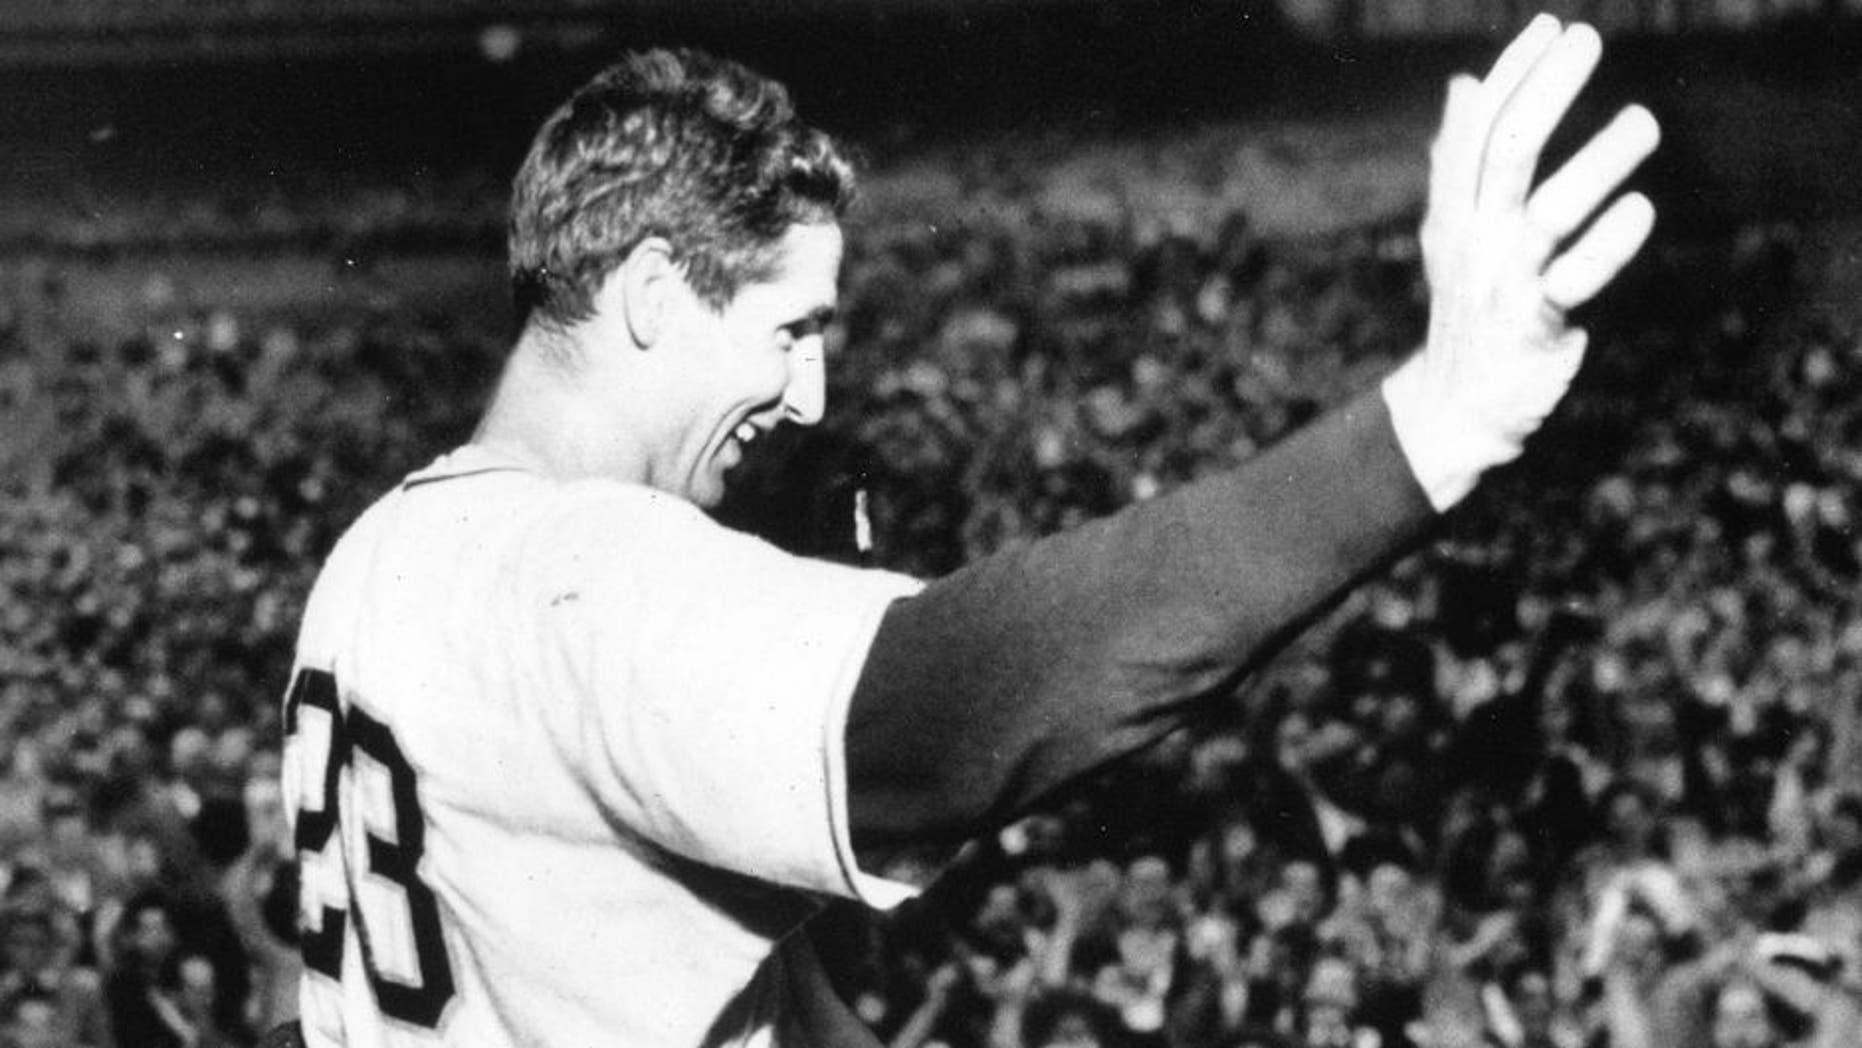 NEW YORK - OCTOBER 1, 1951. Bobby Thomson waves to the cheering crowd after his walk off home run defeated the Brooklyn Dodgers for the National League pennant on October 1, 1951 in the Polo Grounds. (Photo by Mark Rucker/Transcendental Graphics, Getty Images)